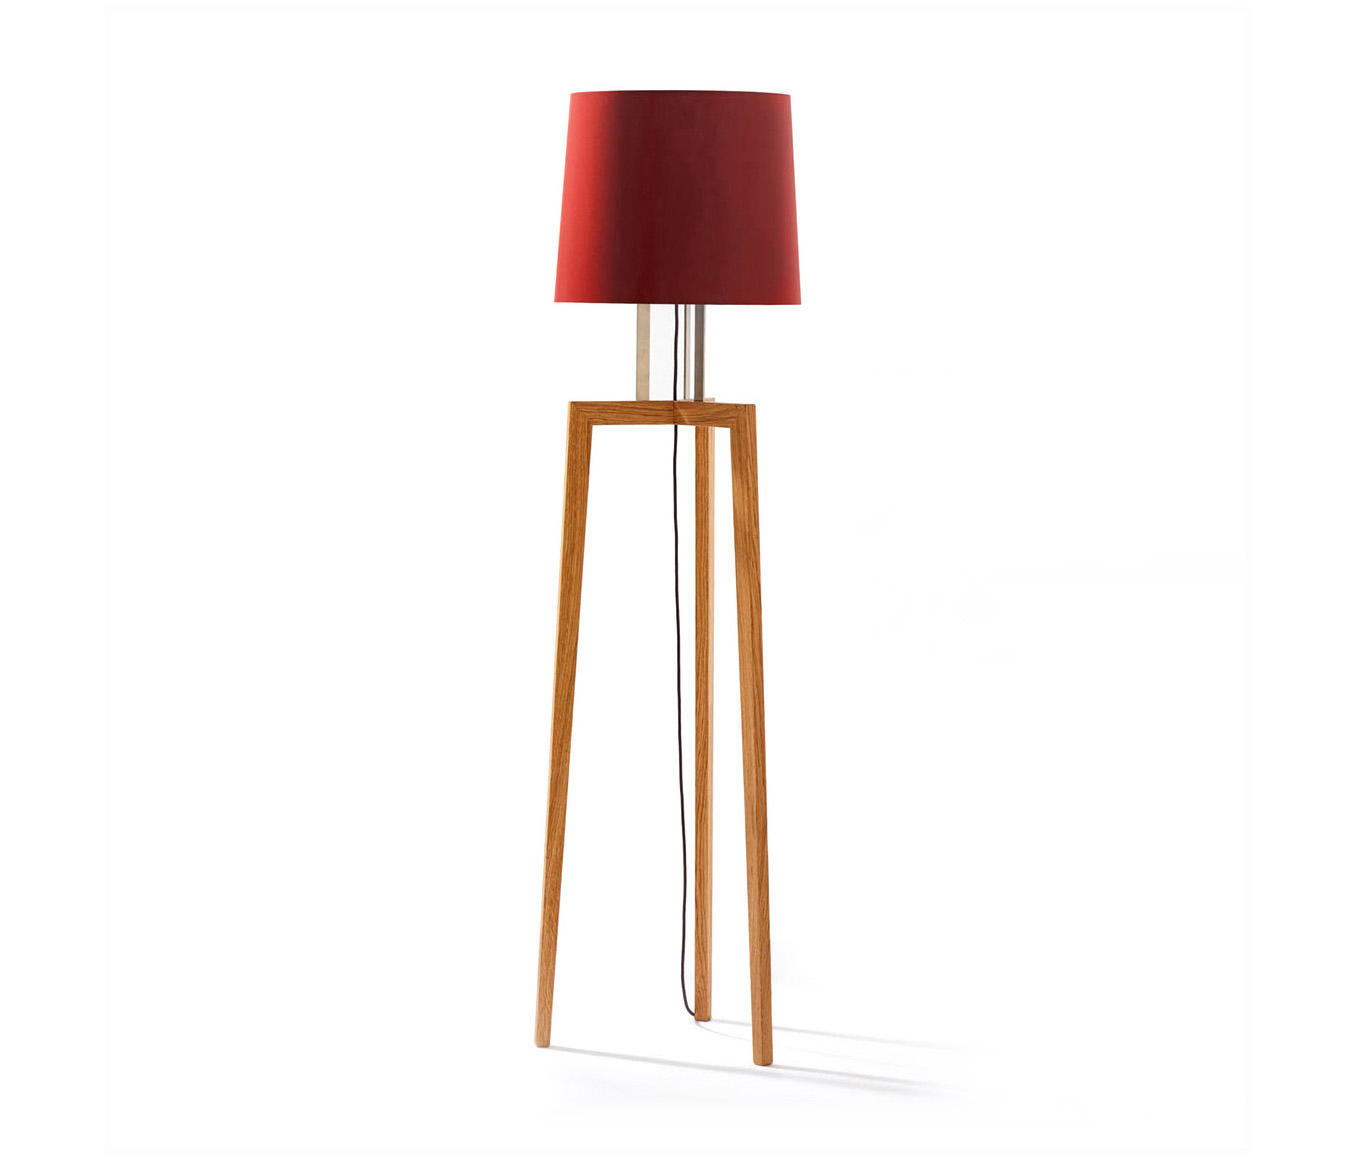 grace standing lamp free standing lights from sixay. Black Bedroom Furniture Sets. Home Design Ideas